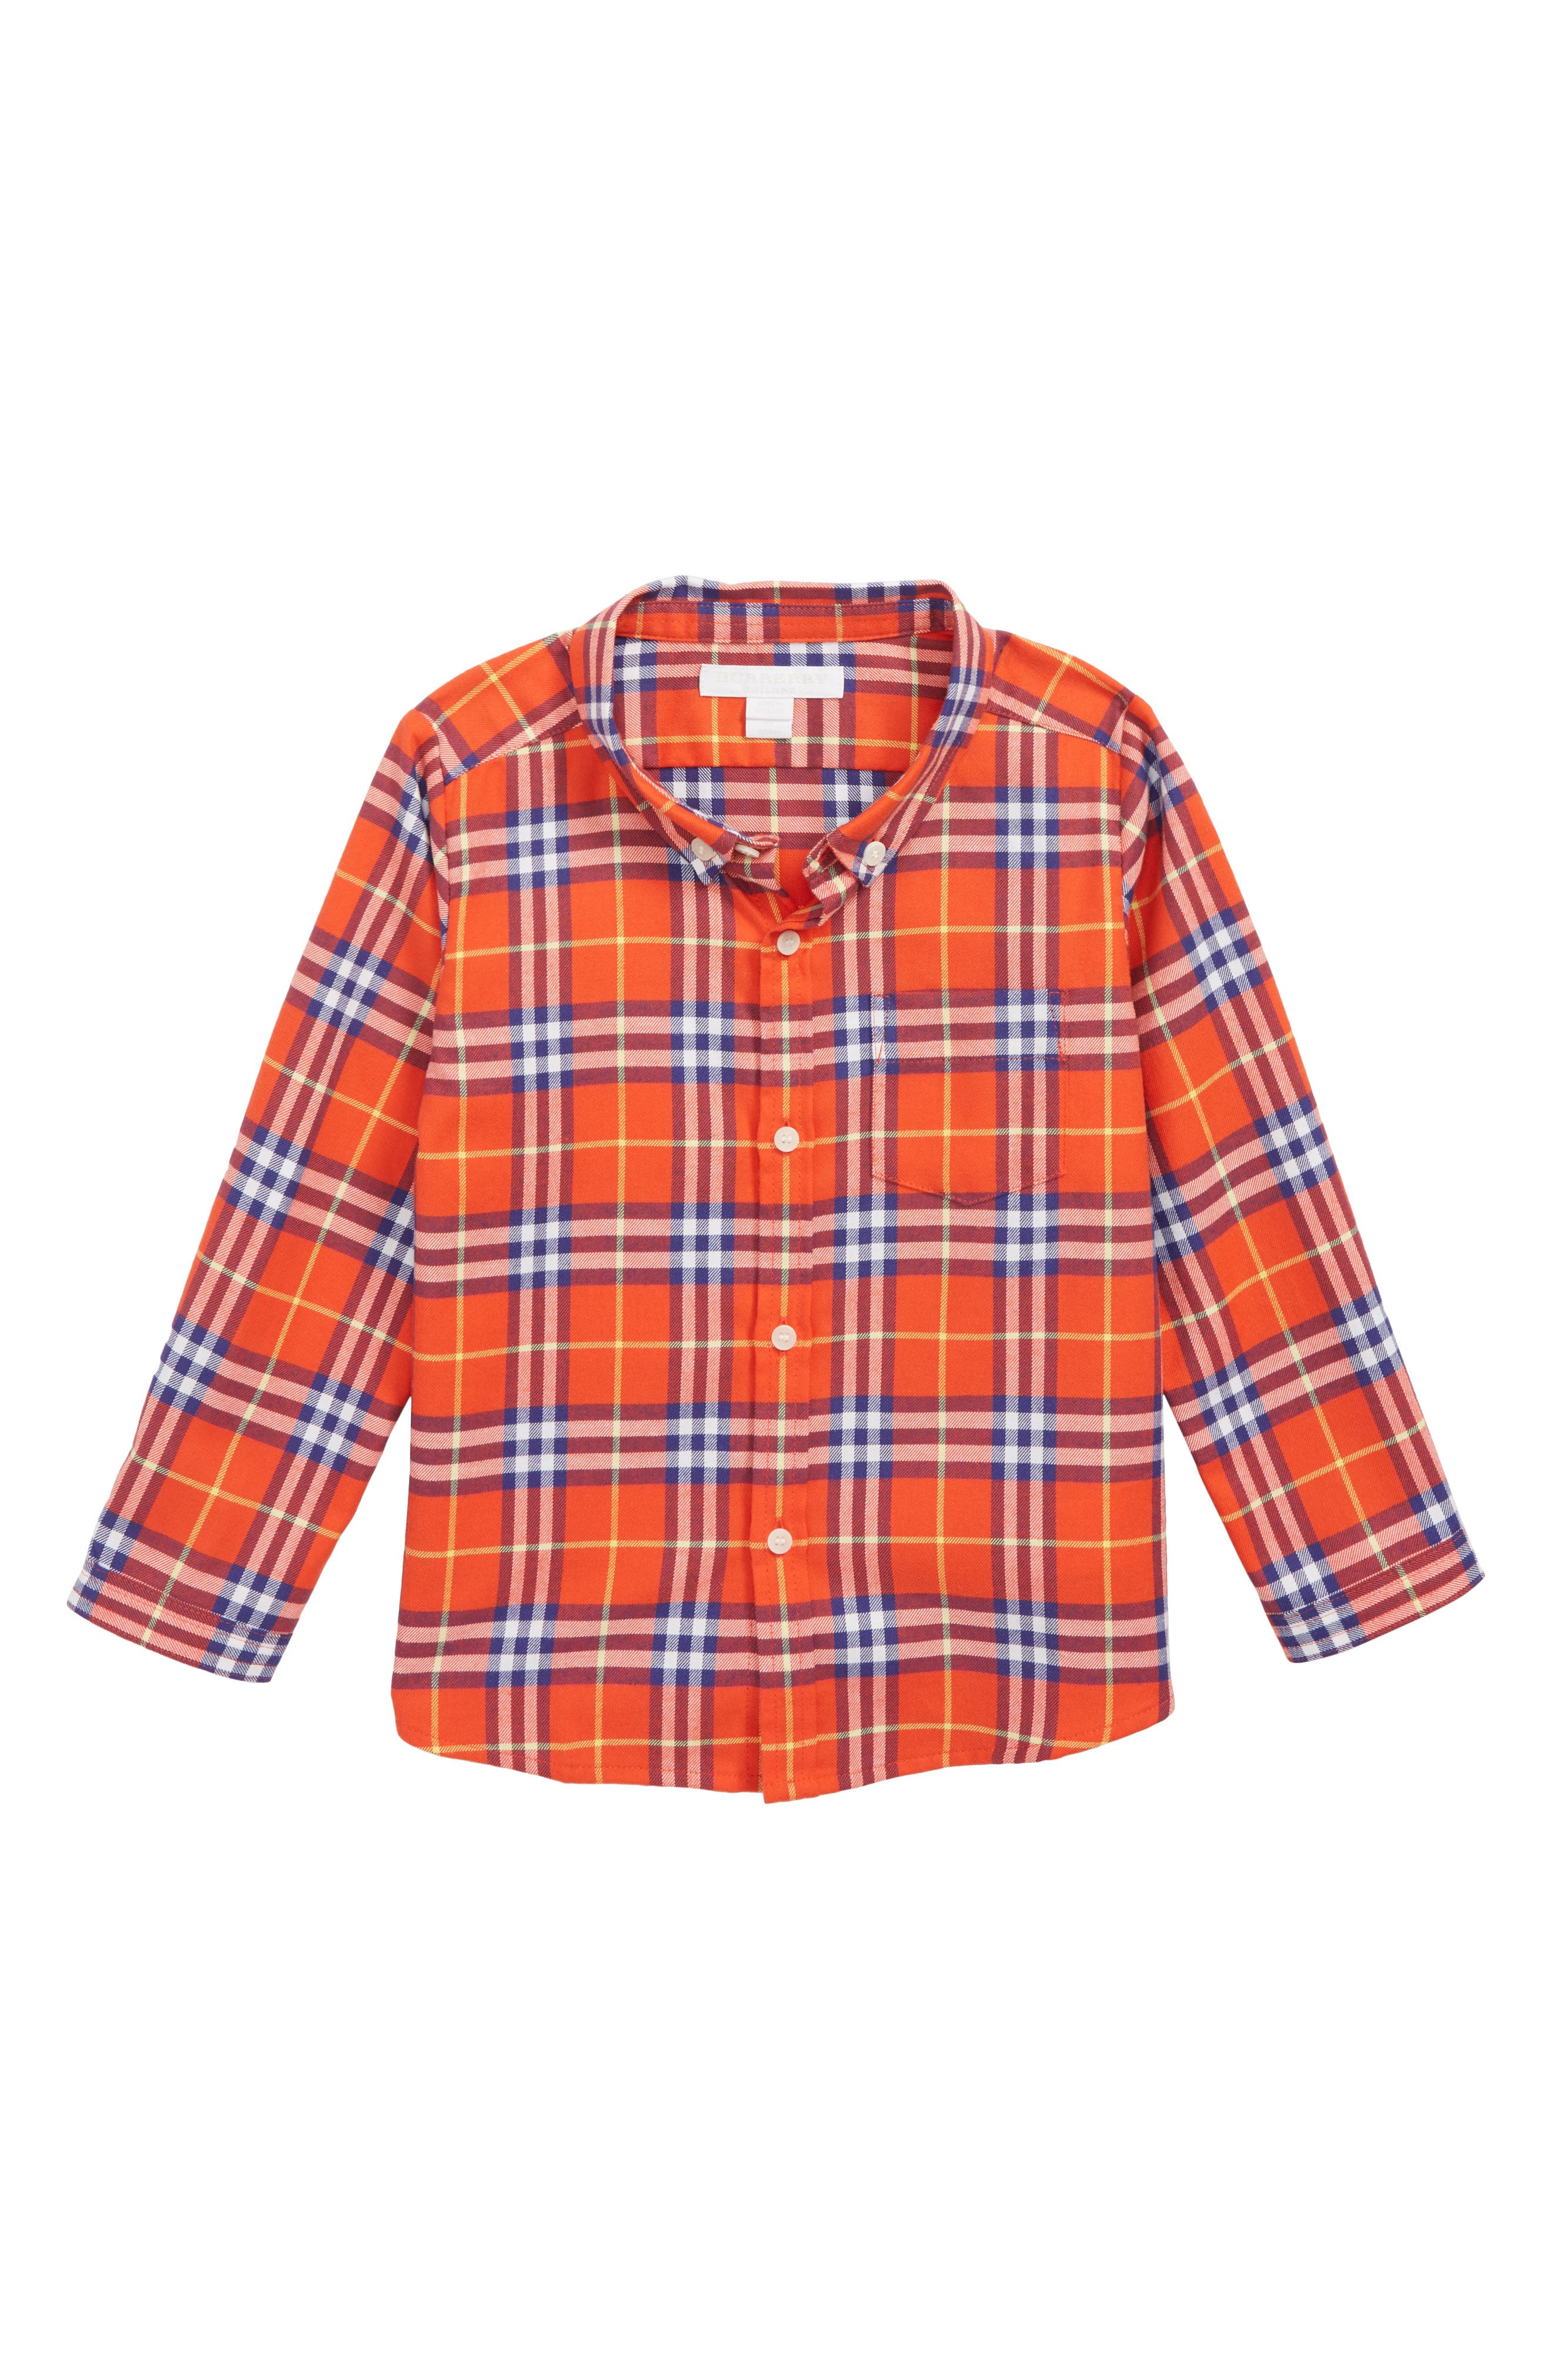 BURBERRY Fred Plaid Woven Shirt, Main, color, ORANGE RED CHK